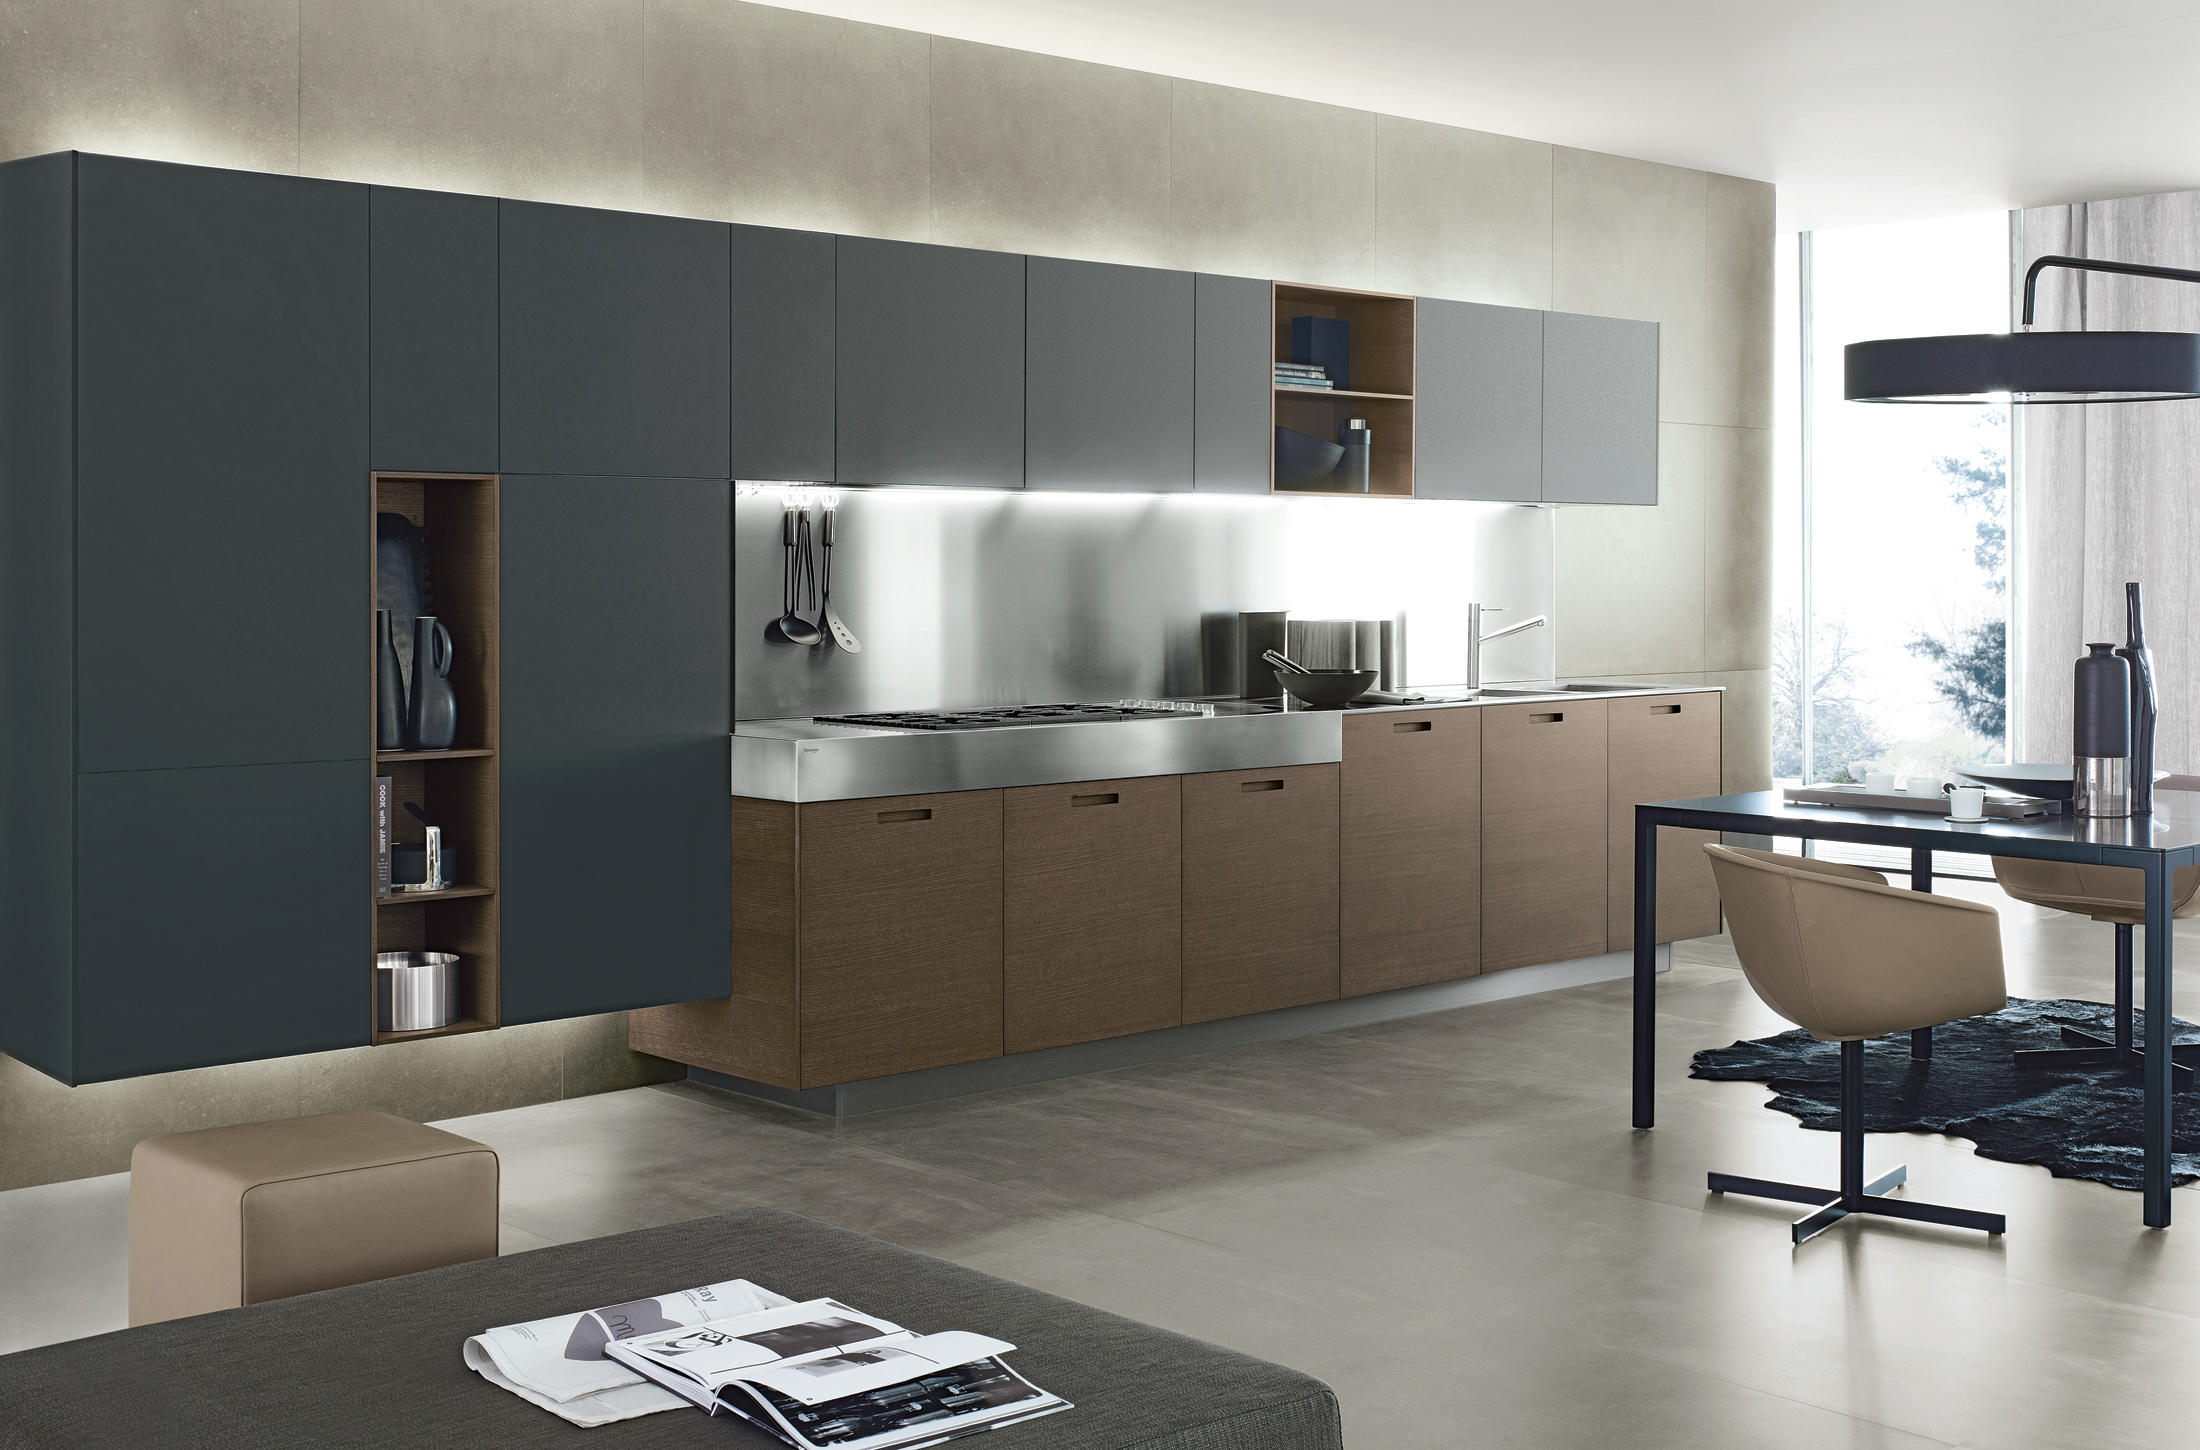 freedom furniture kitchens. kyton fitted kitchens from varenna poliform architonic freedom furniture